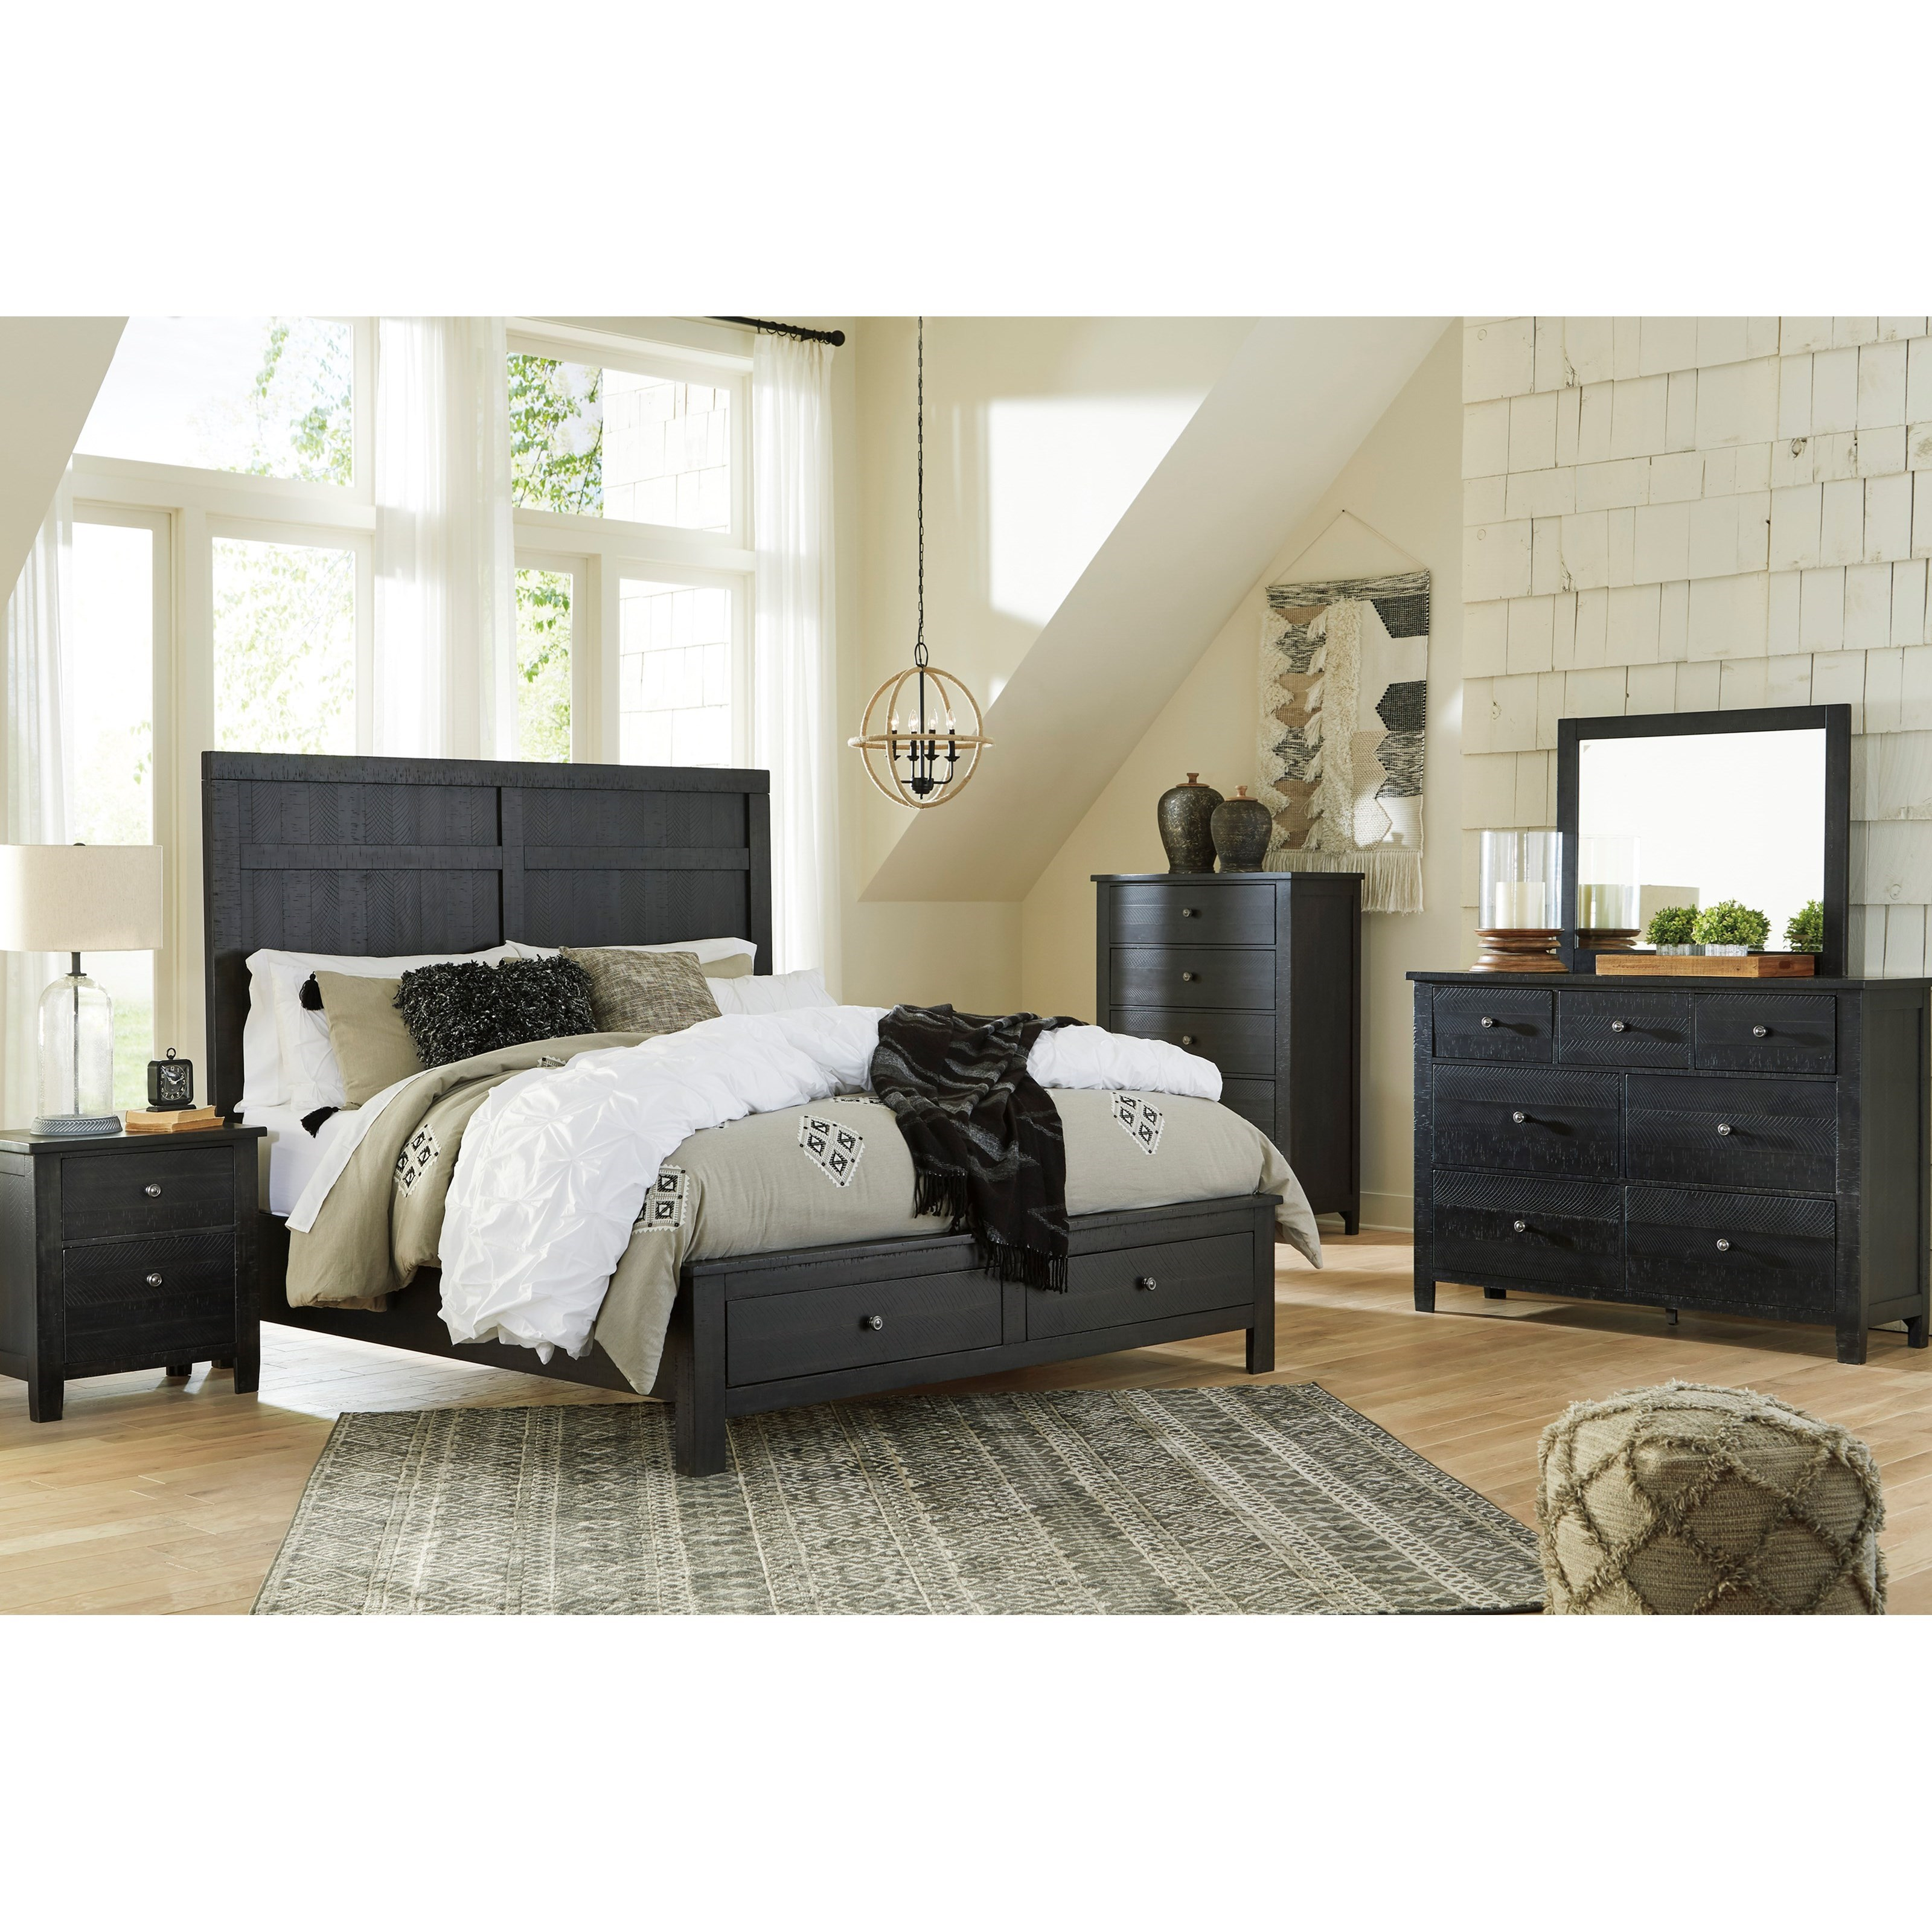 Noorbrook California King Bedroom Group by Benchcraft at Northeast Factory Direct